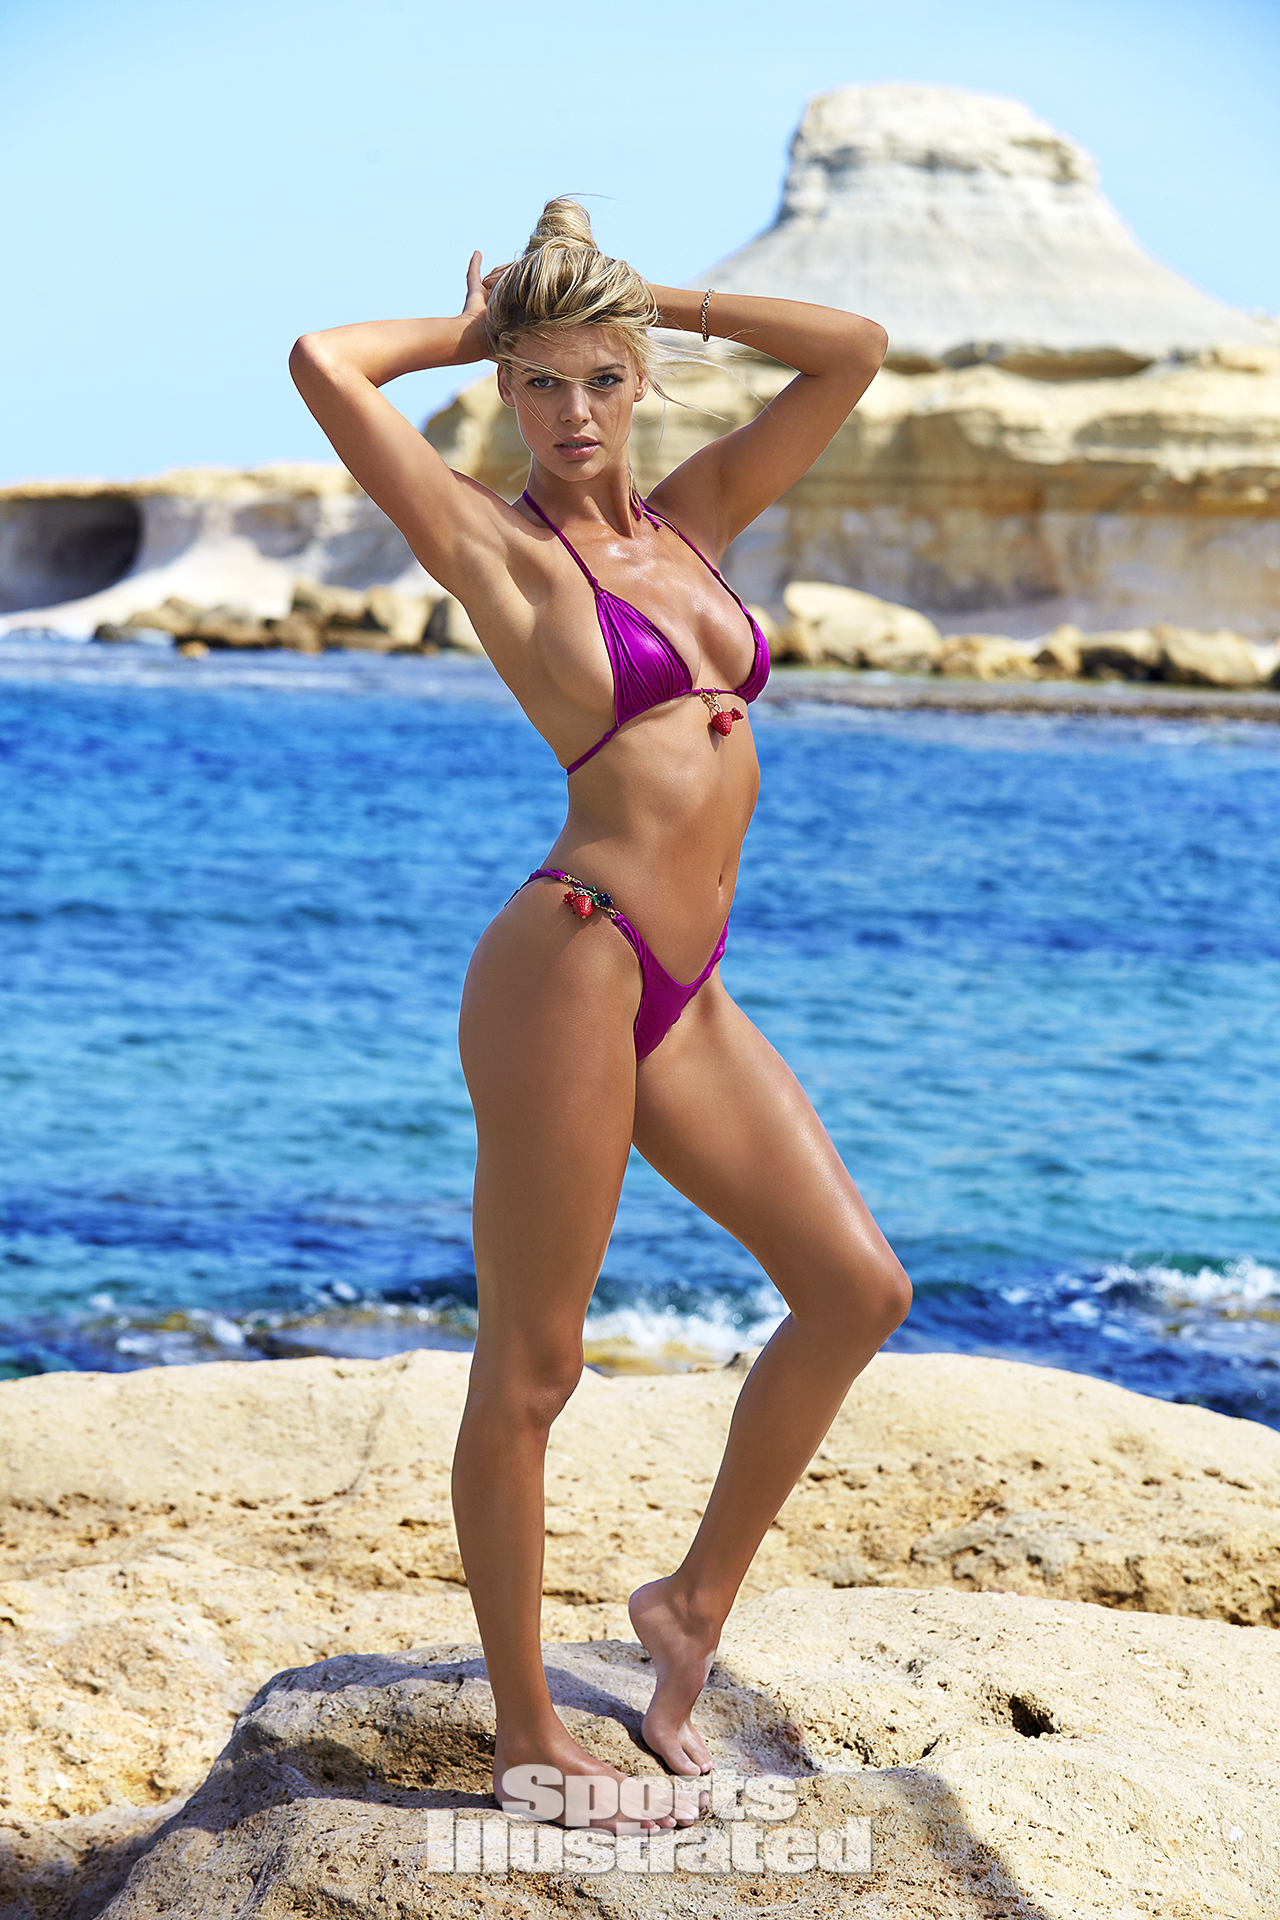 Kelly Rohrbach was photographed by Ben Watts in Malta. Swimsuit by Agent Provocatuer.